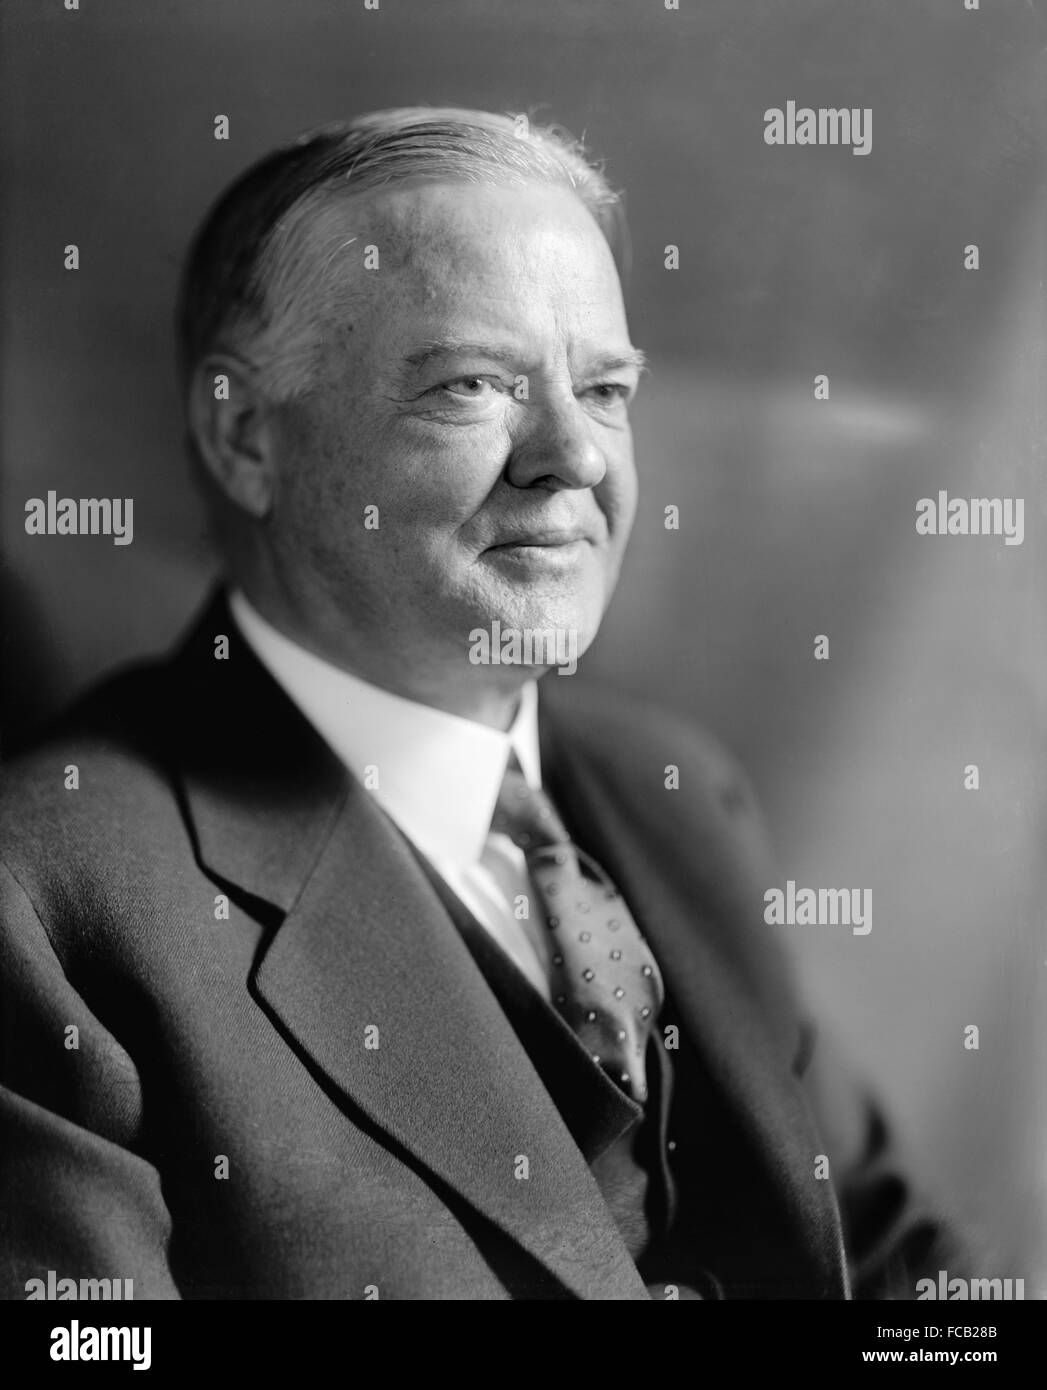 Herbert Hoover, the 31st President of the USA - Stock Image